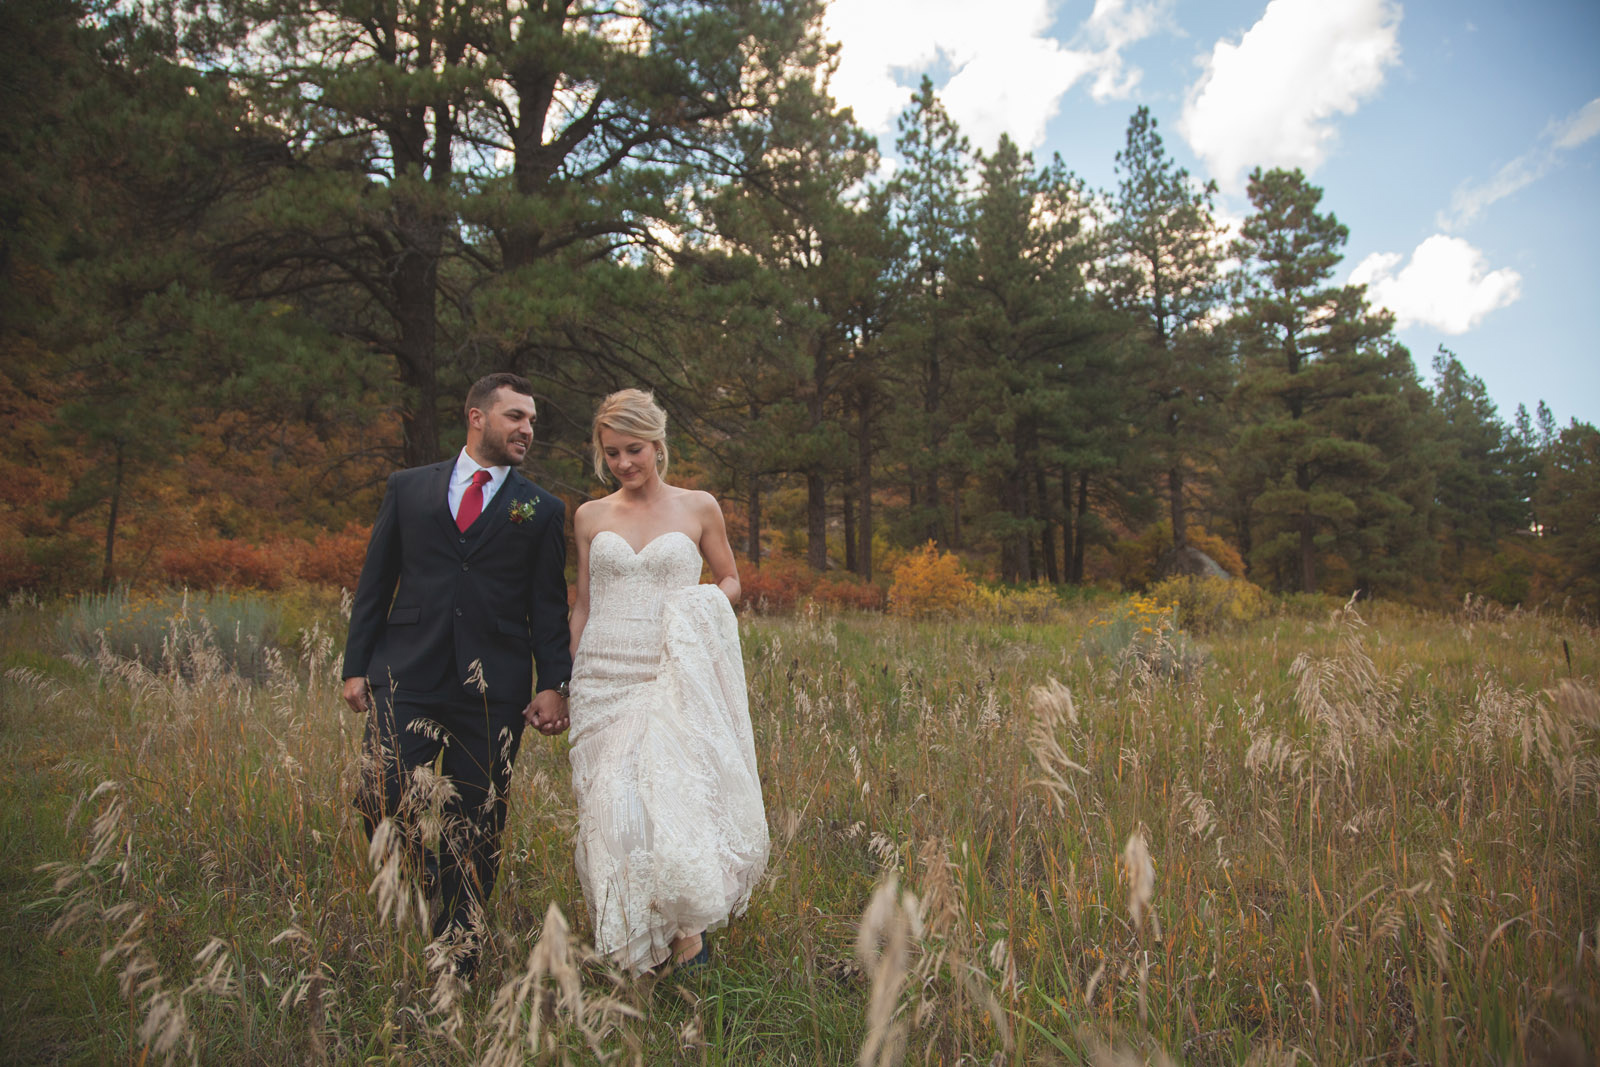 170-beautiful-bride-and-groom-photojournalist-portraits-at-elopement-wedding-in-durango-colorado-forest